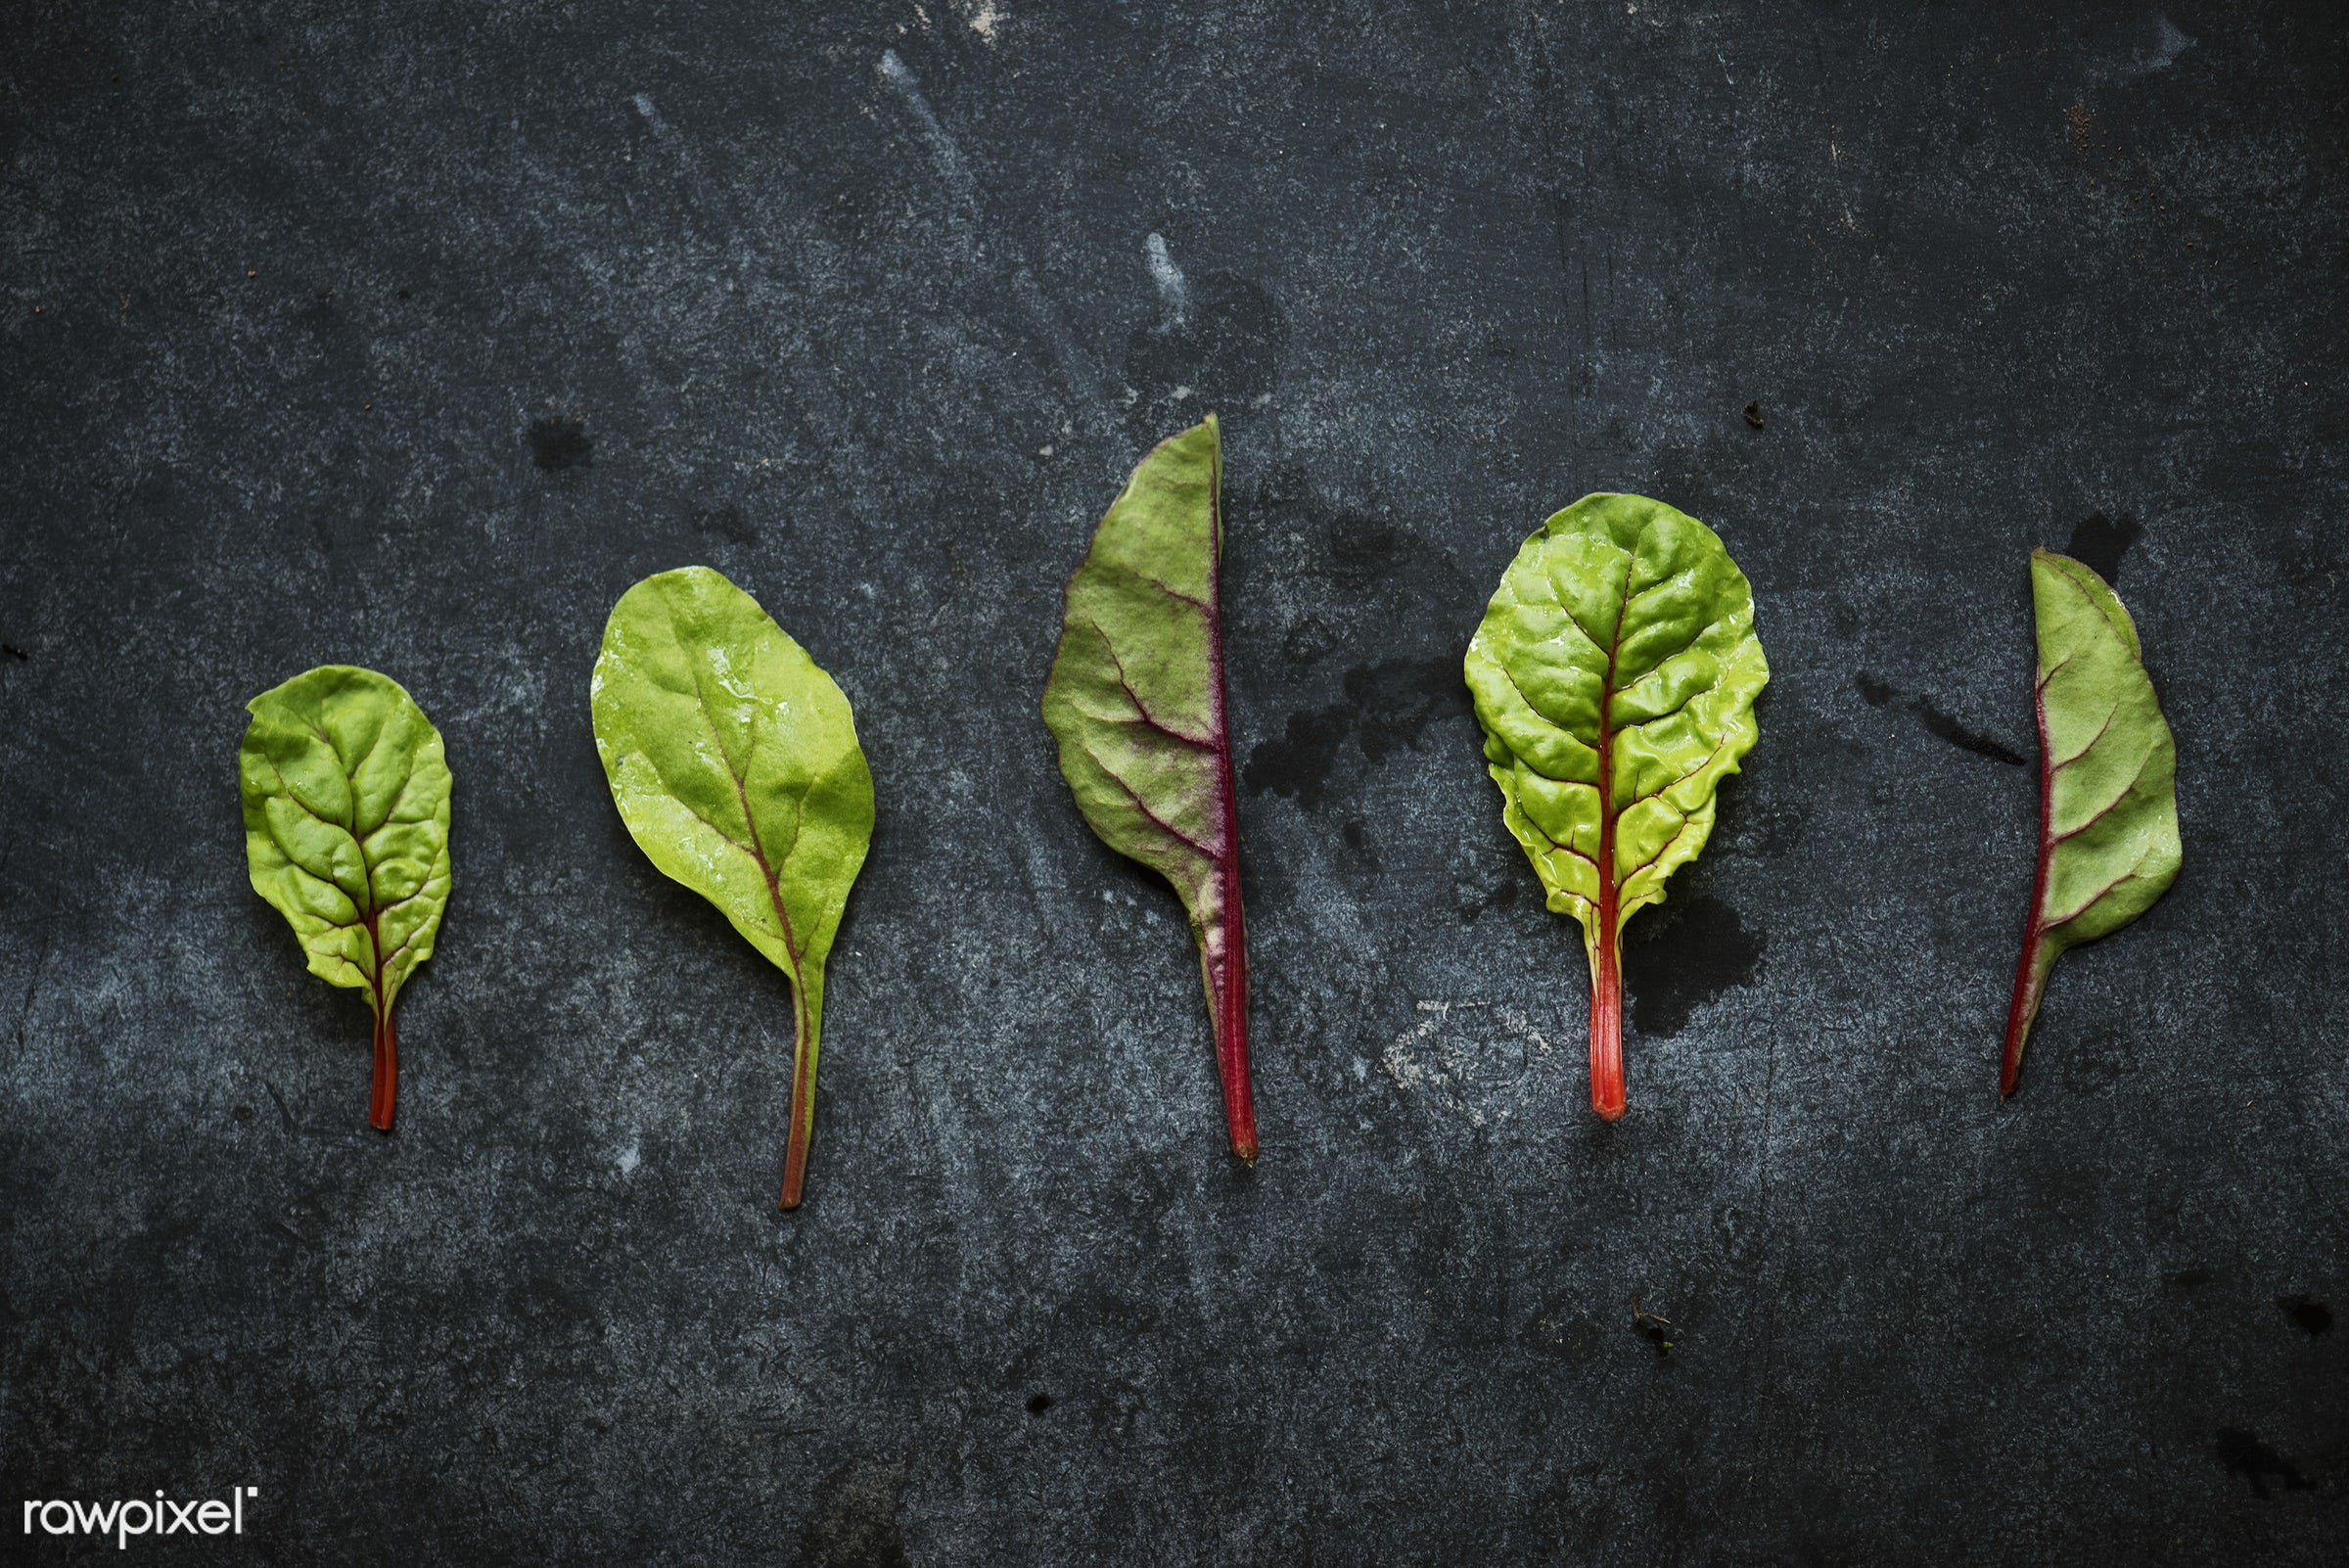 salad, raw, plant, nobody, mangold, leaves, red chard, black background, real, organic, nature, fresh, food, background,...